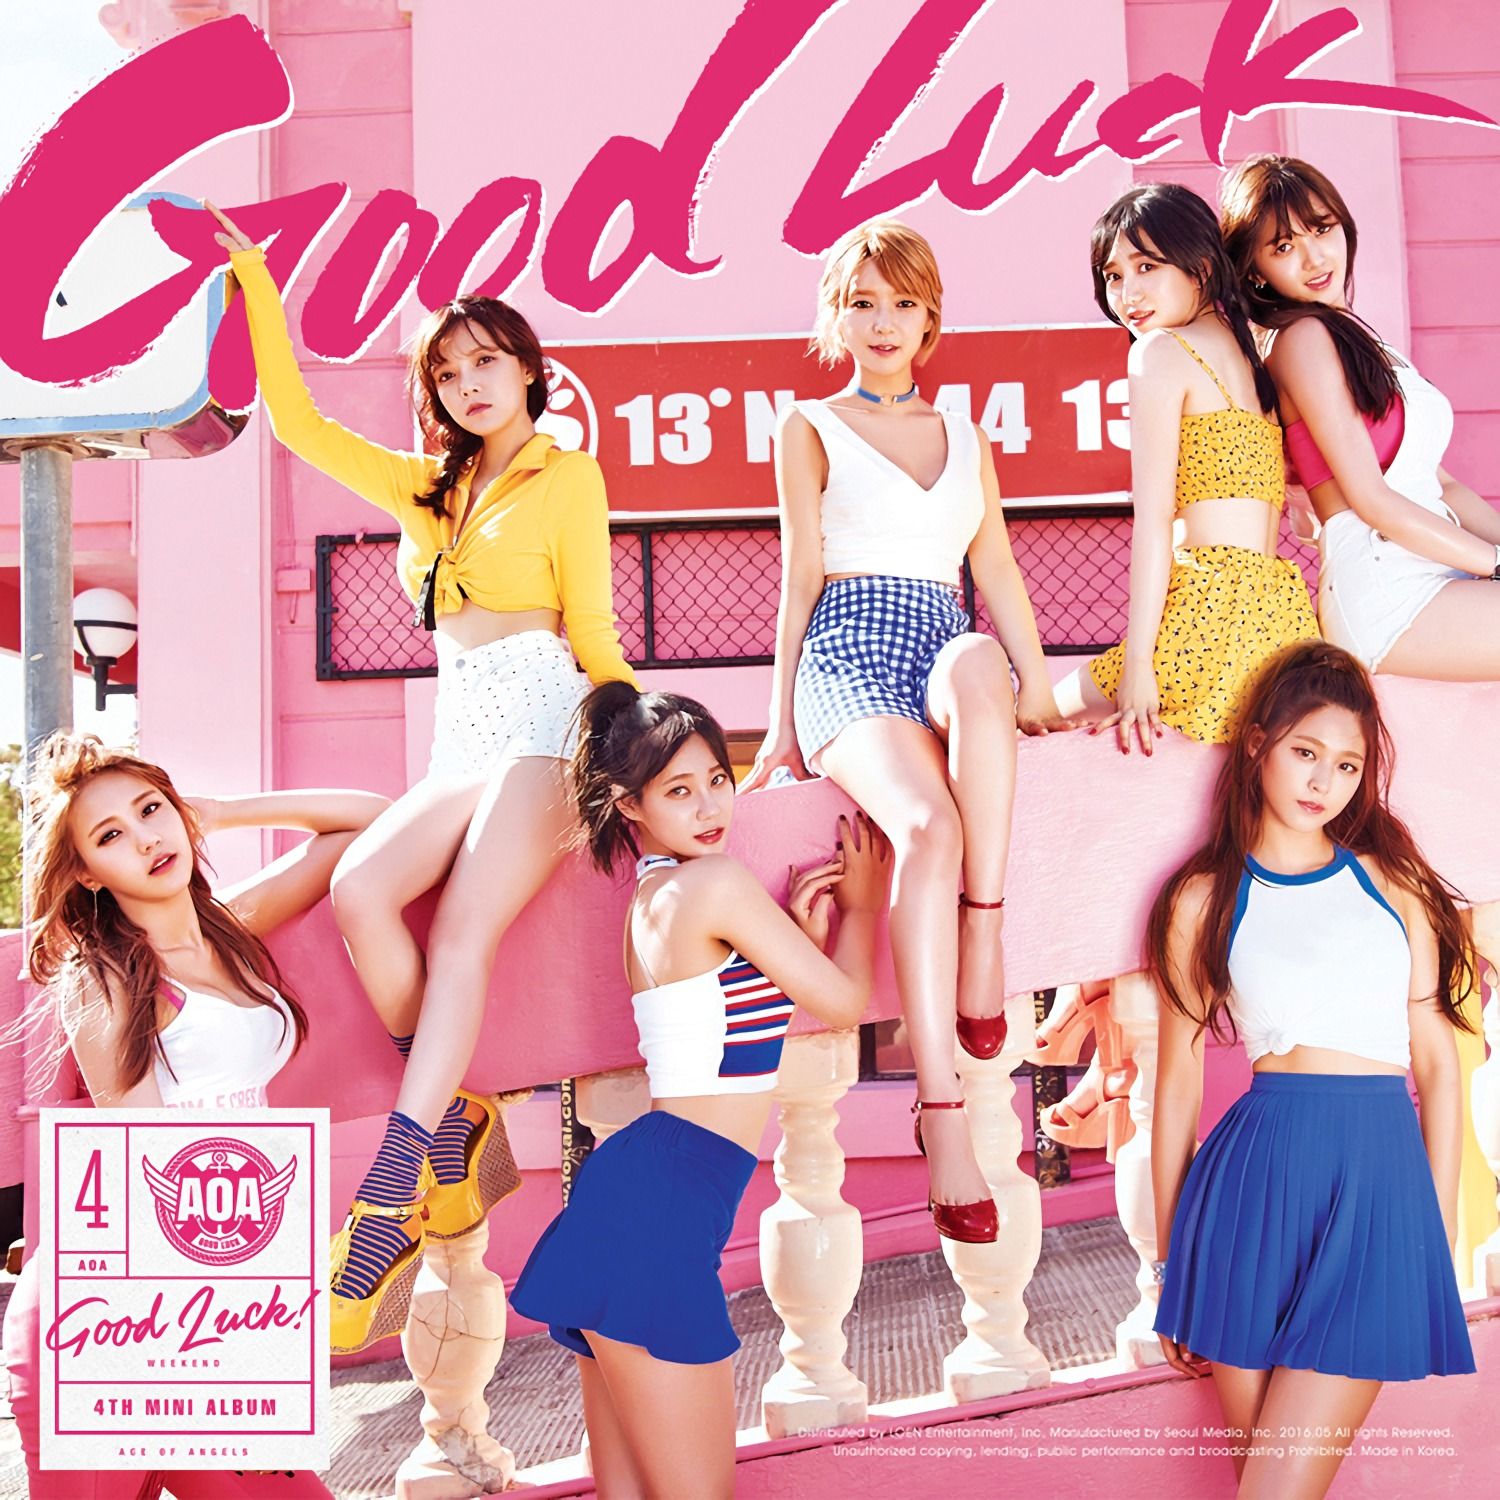 Good Luck - Ace Of Angels (AOA)